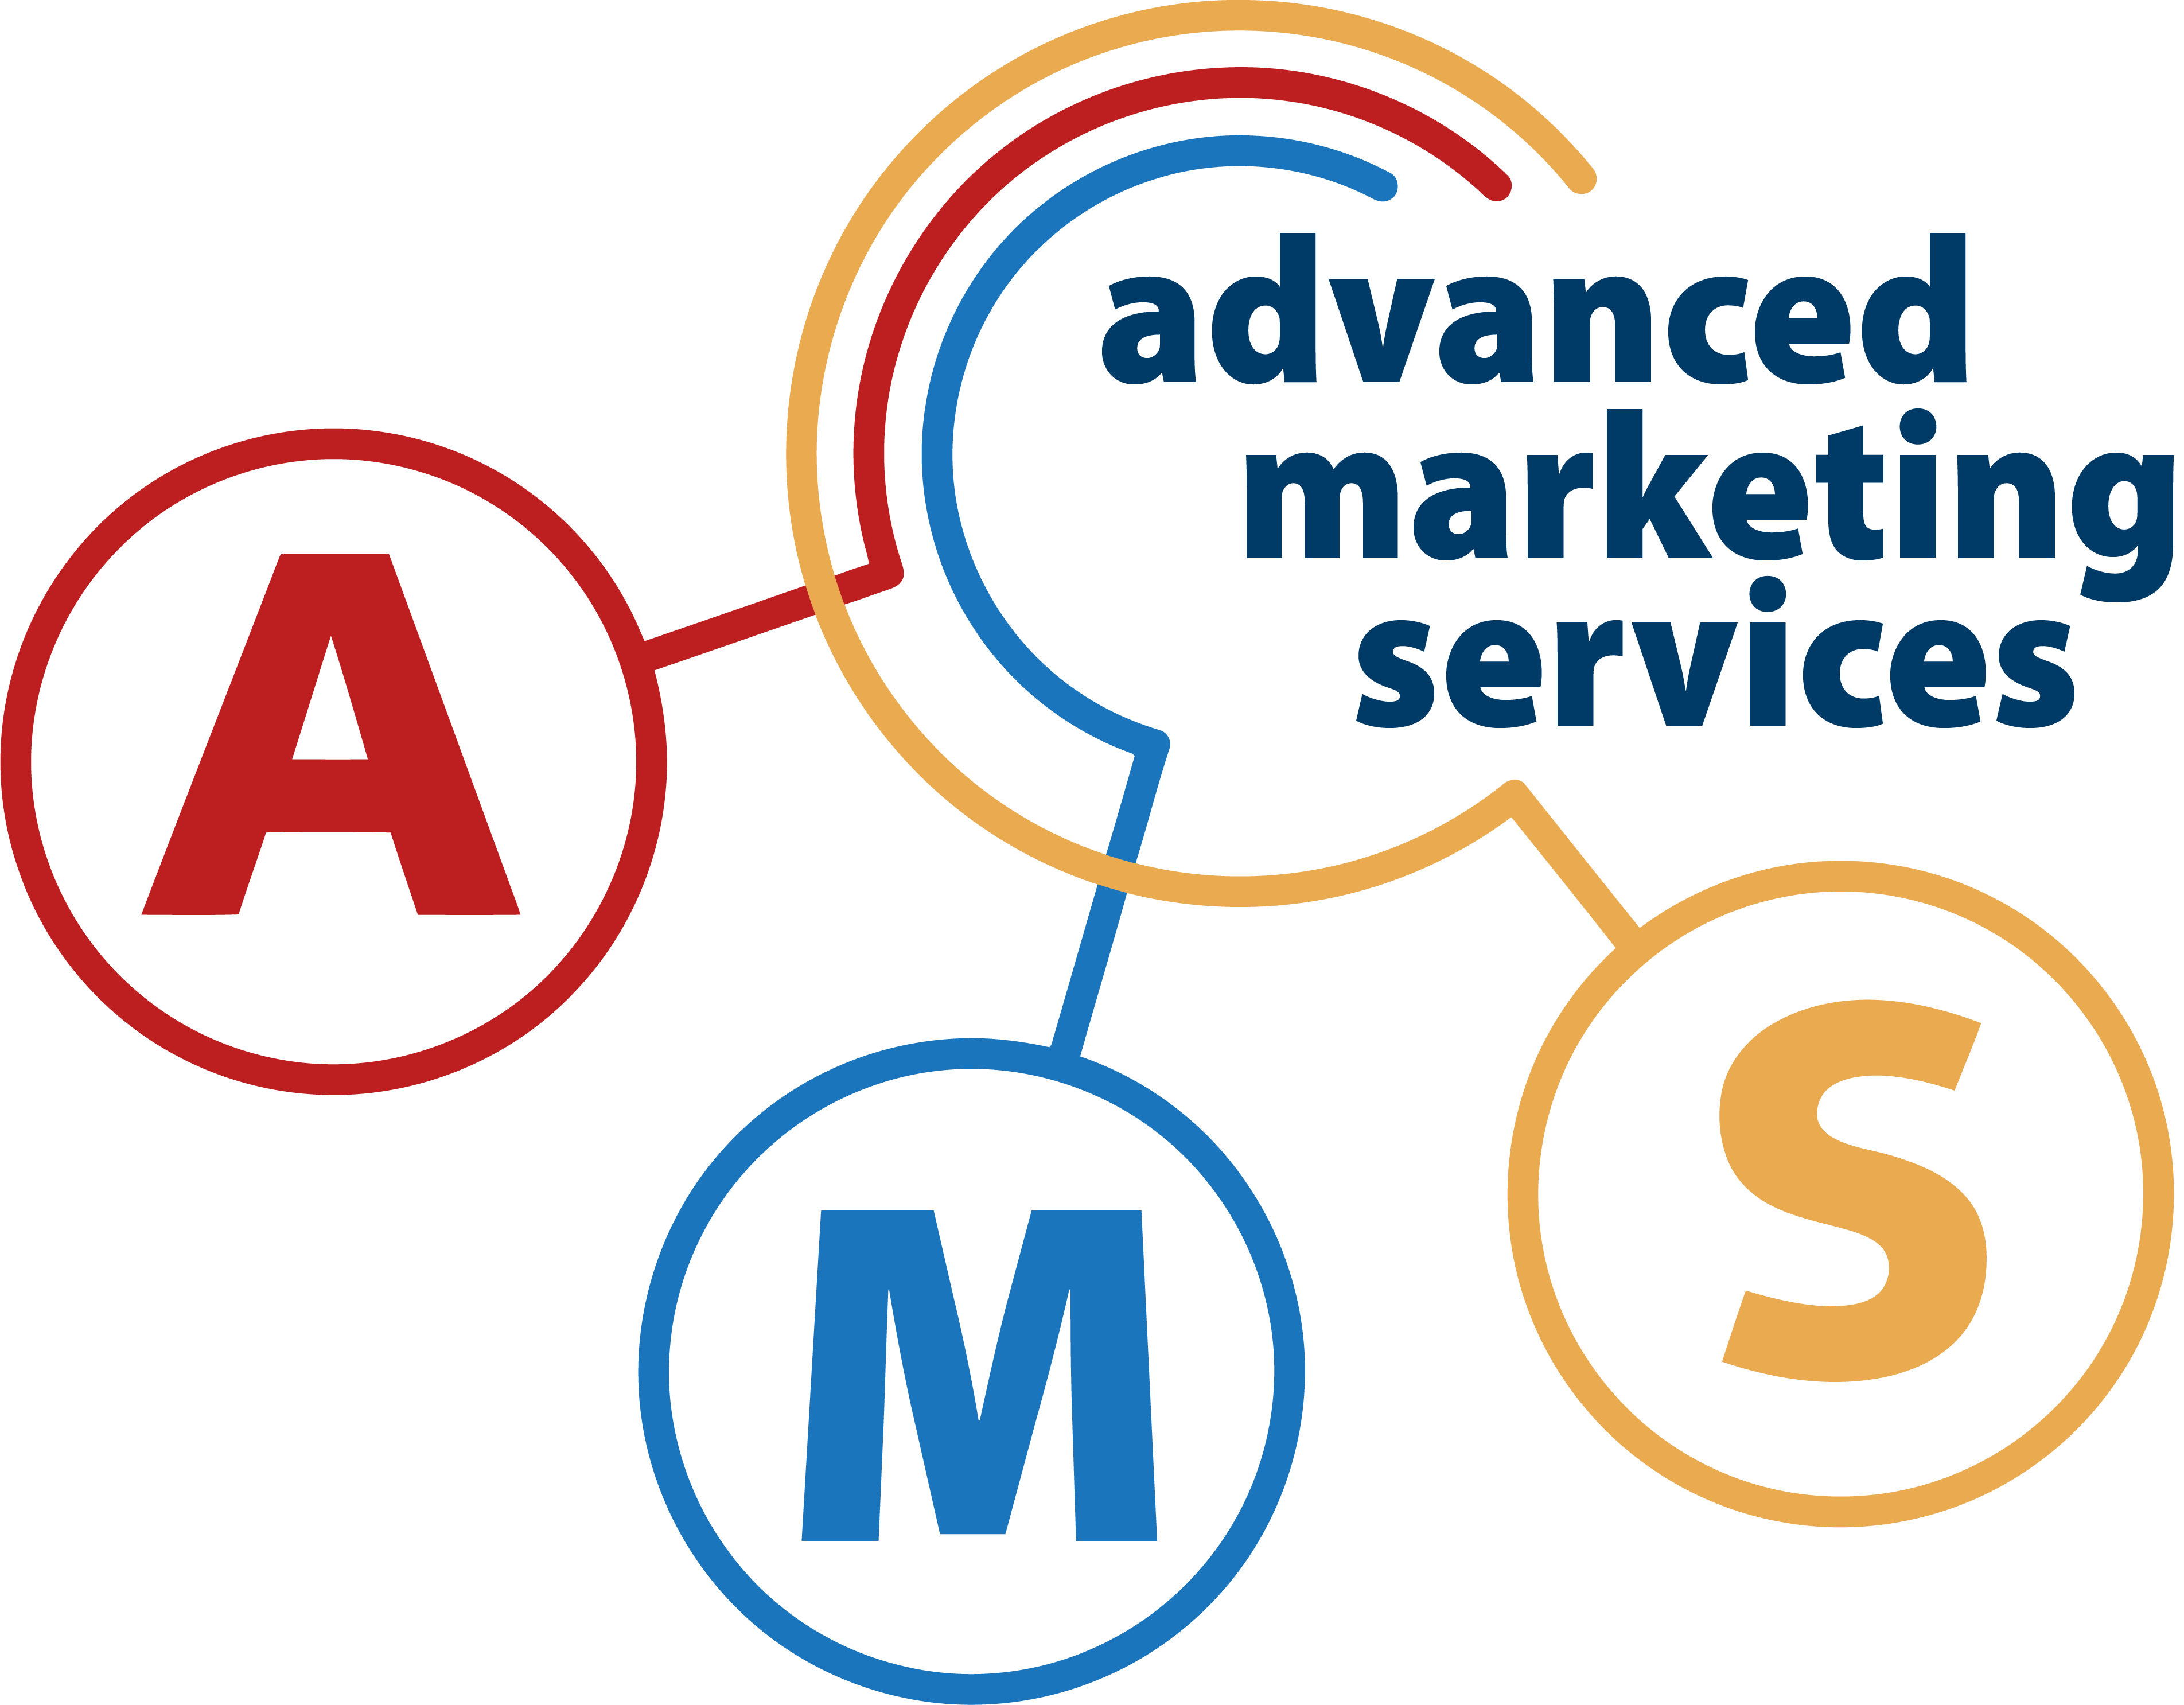 Advanced Marketing Services